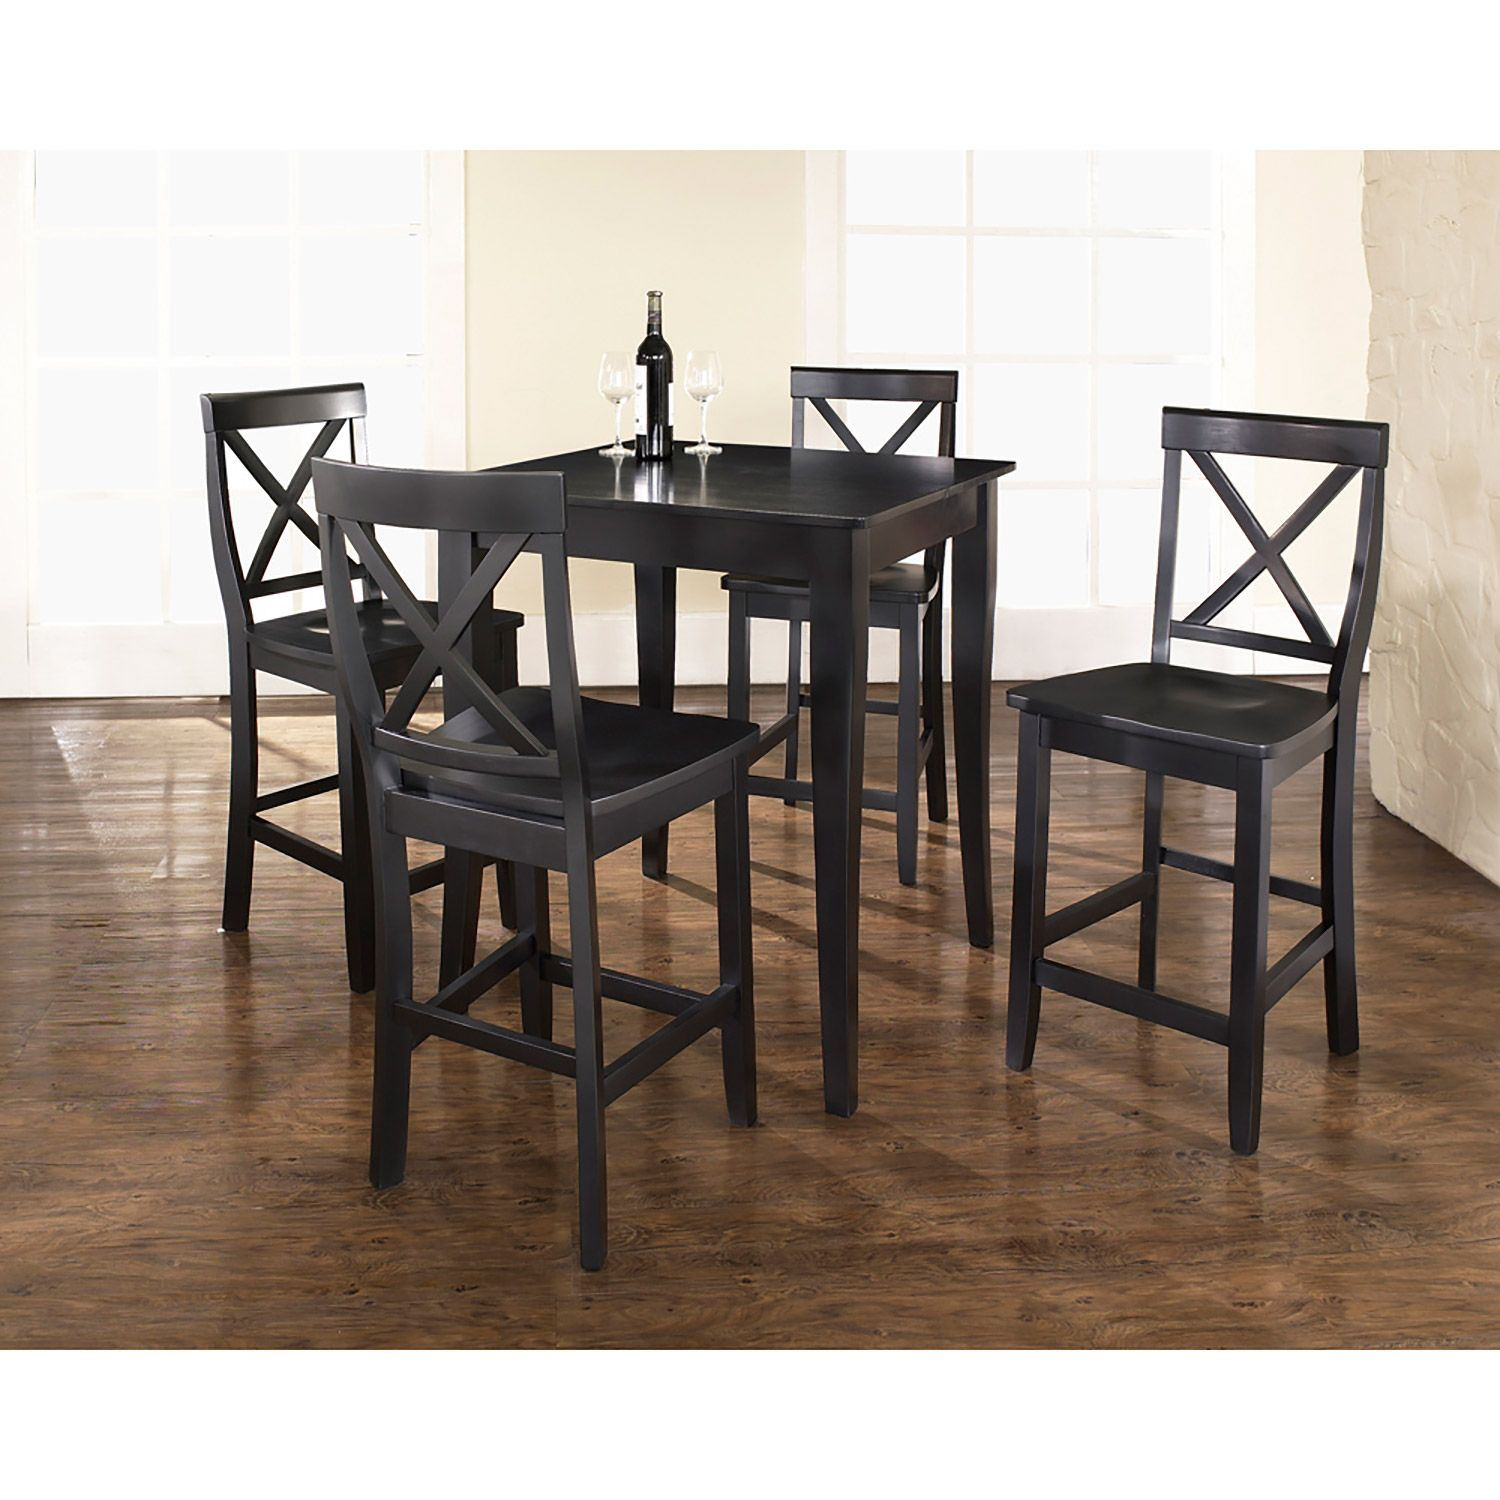 Piece pub dining set black d kd bk crosley